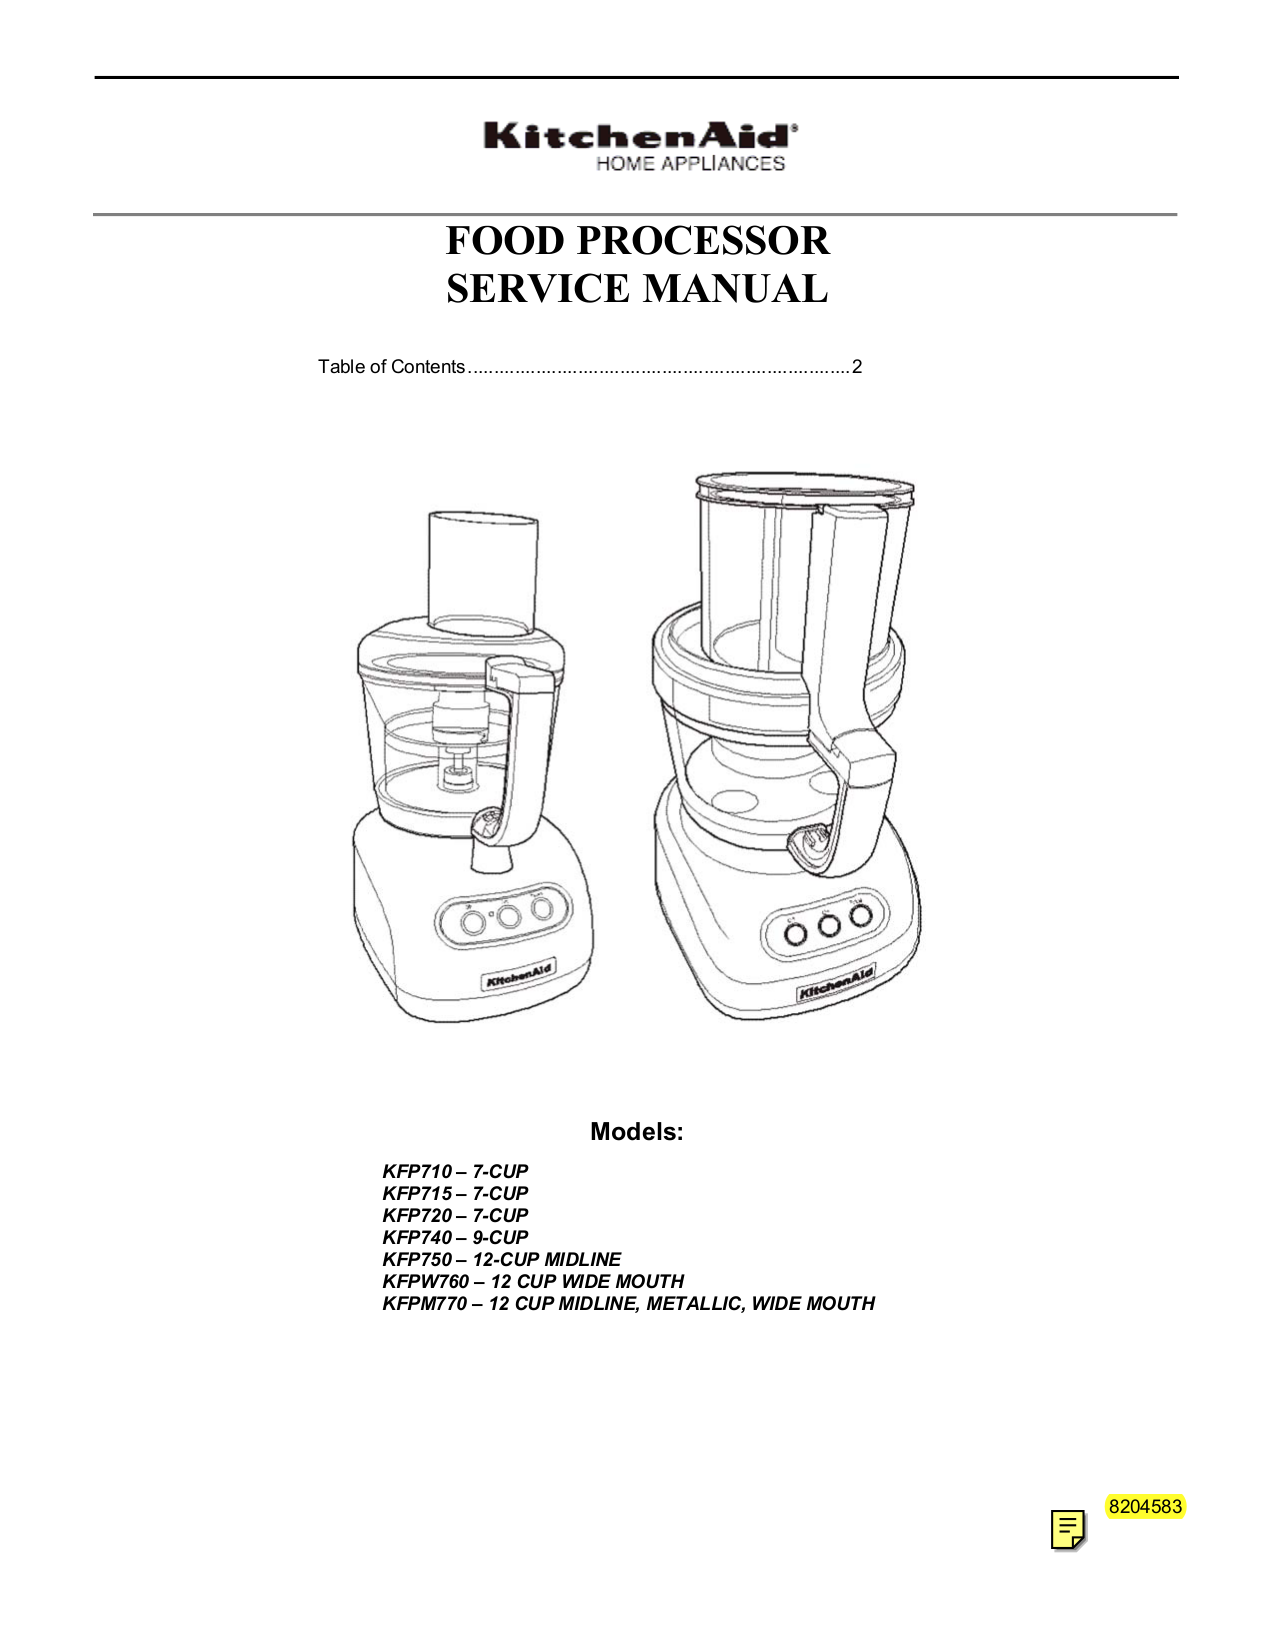 Pdf For KitchenAid Food Processor KFPW760 Manual